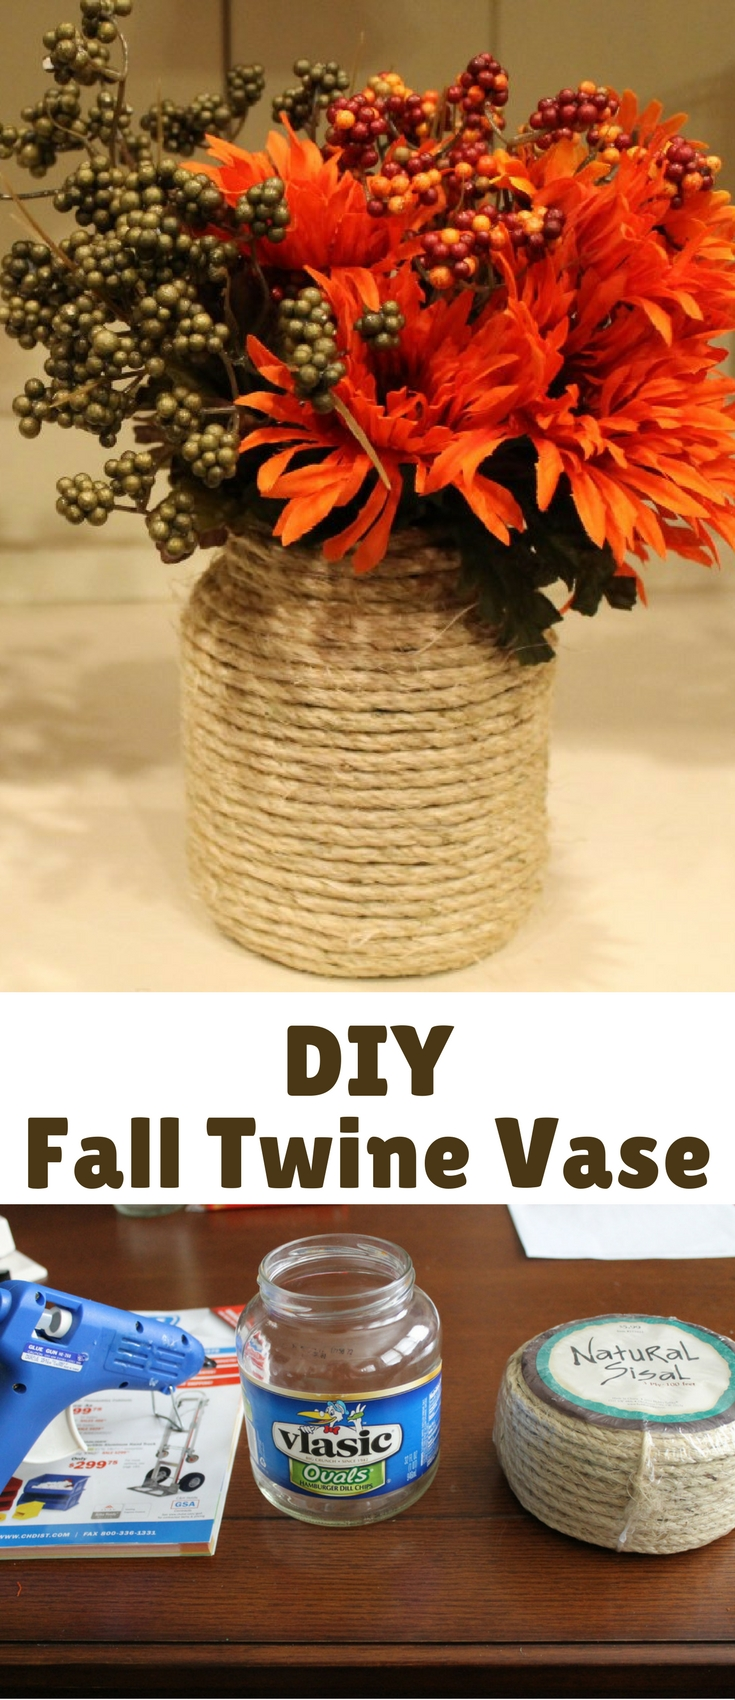 I have been noticing lots of fall inspired crafts on pinterest and decided to take on one of my own. I recently finished a big hutch for the kitchen (post to come soon), and I need cute things to help style it. I found a couple little vases/bowls at the dollar store and thought they would be perfect to decorate.